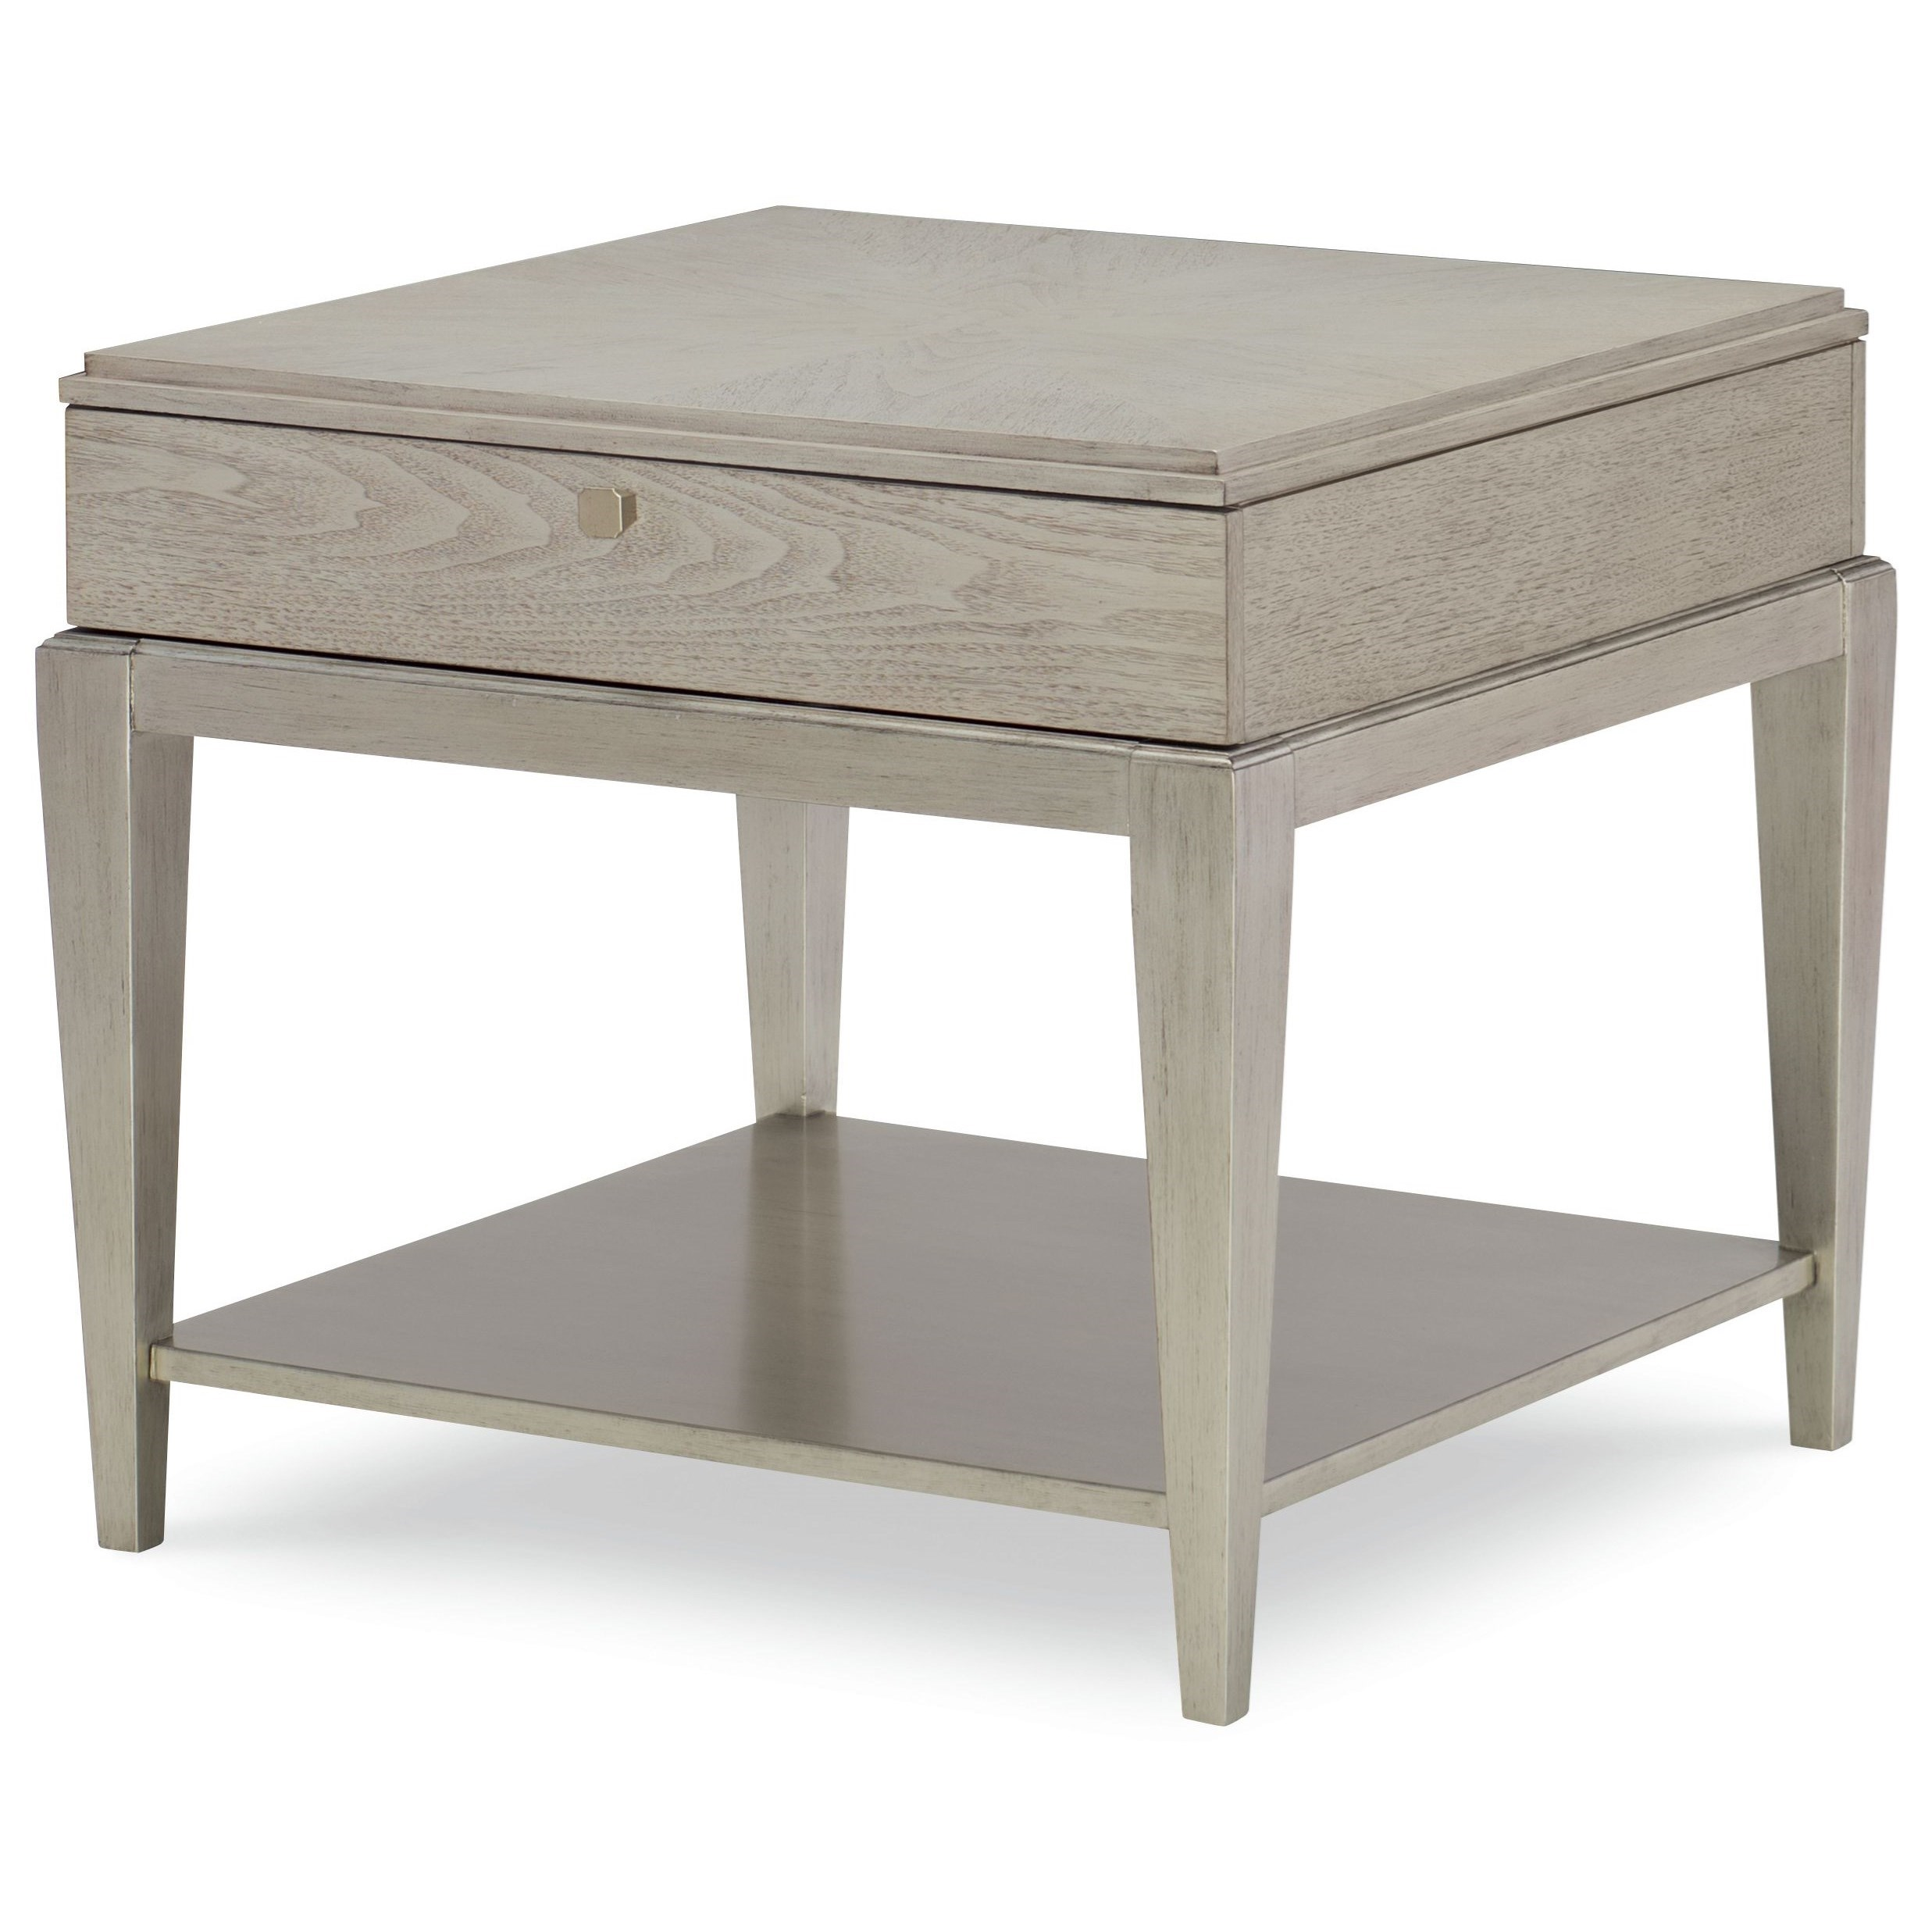 Cinema Square End Table  by Rachael Ray Home by Legacy Classic at Stoney Creek Furniture